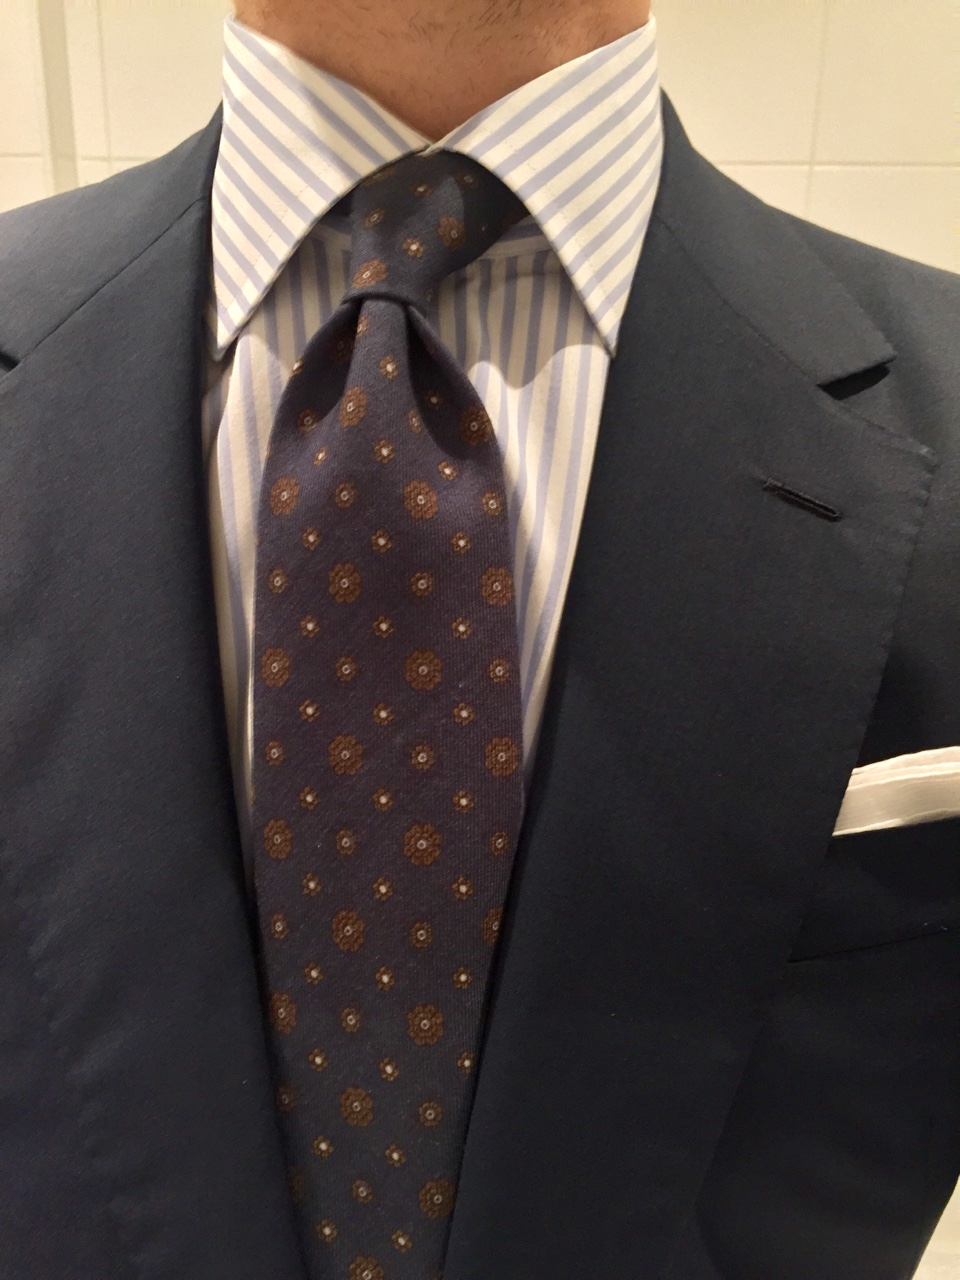 On Tie Knots and Shirt Collars